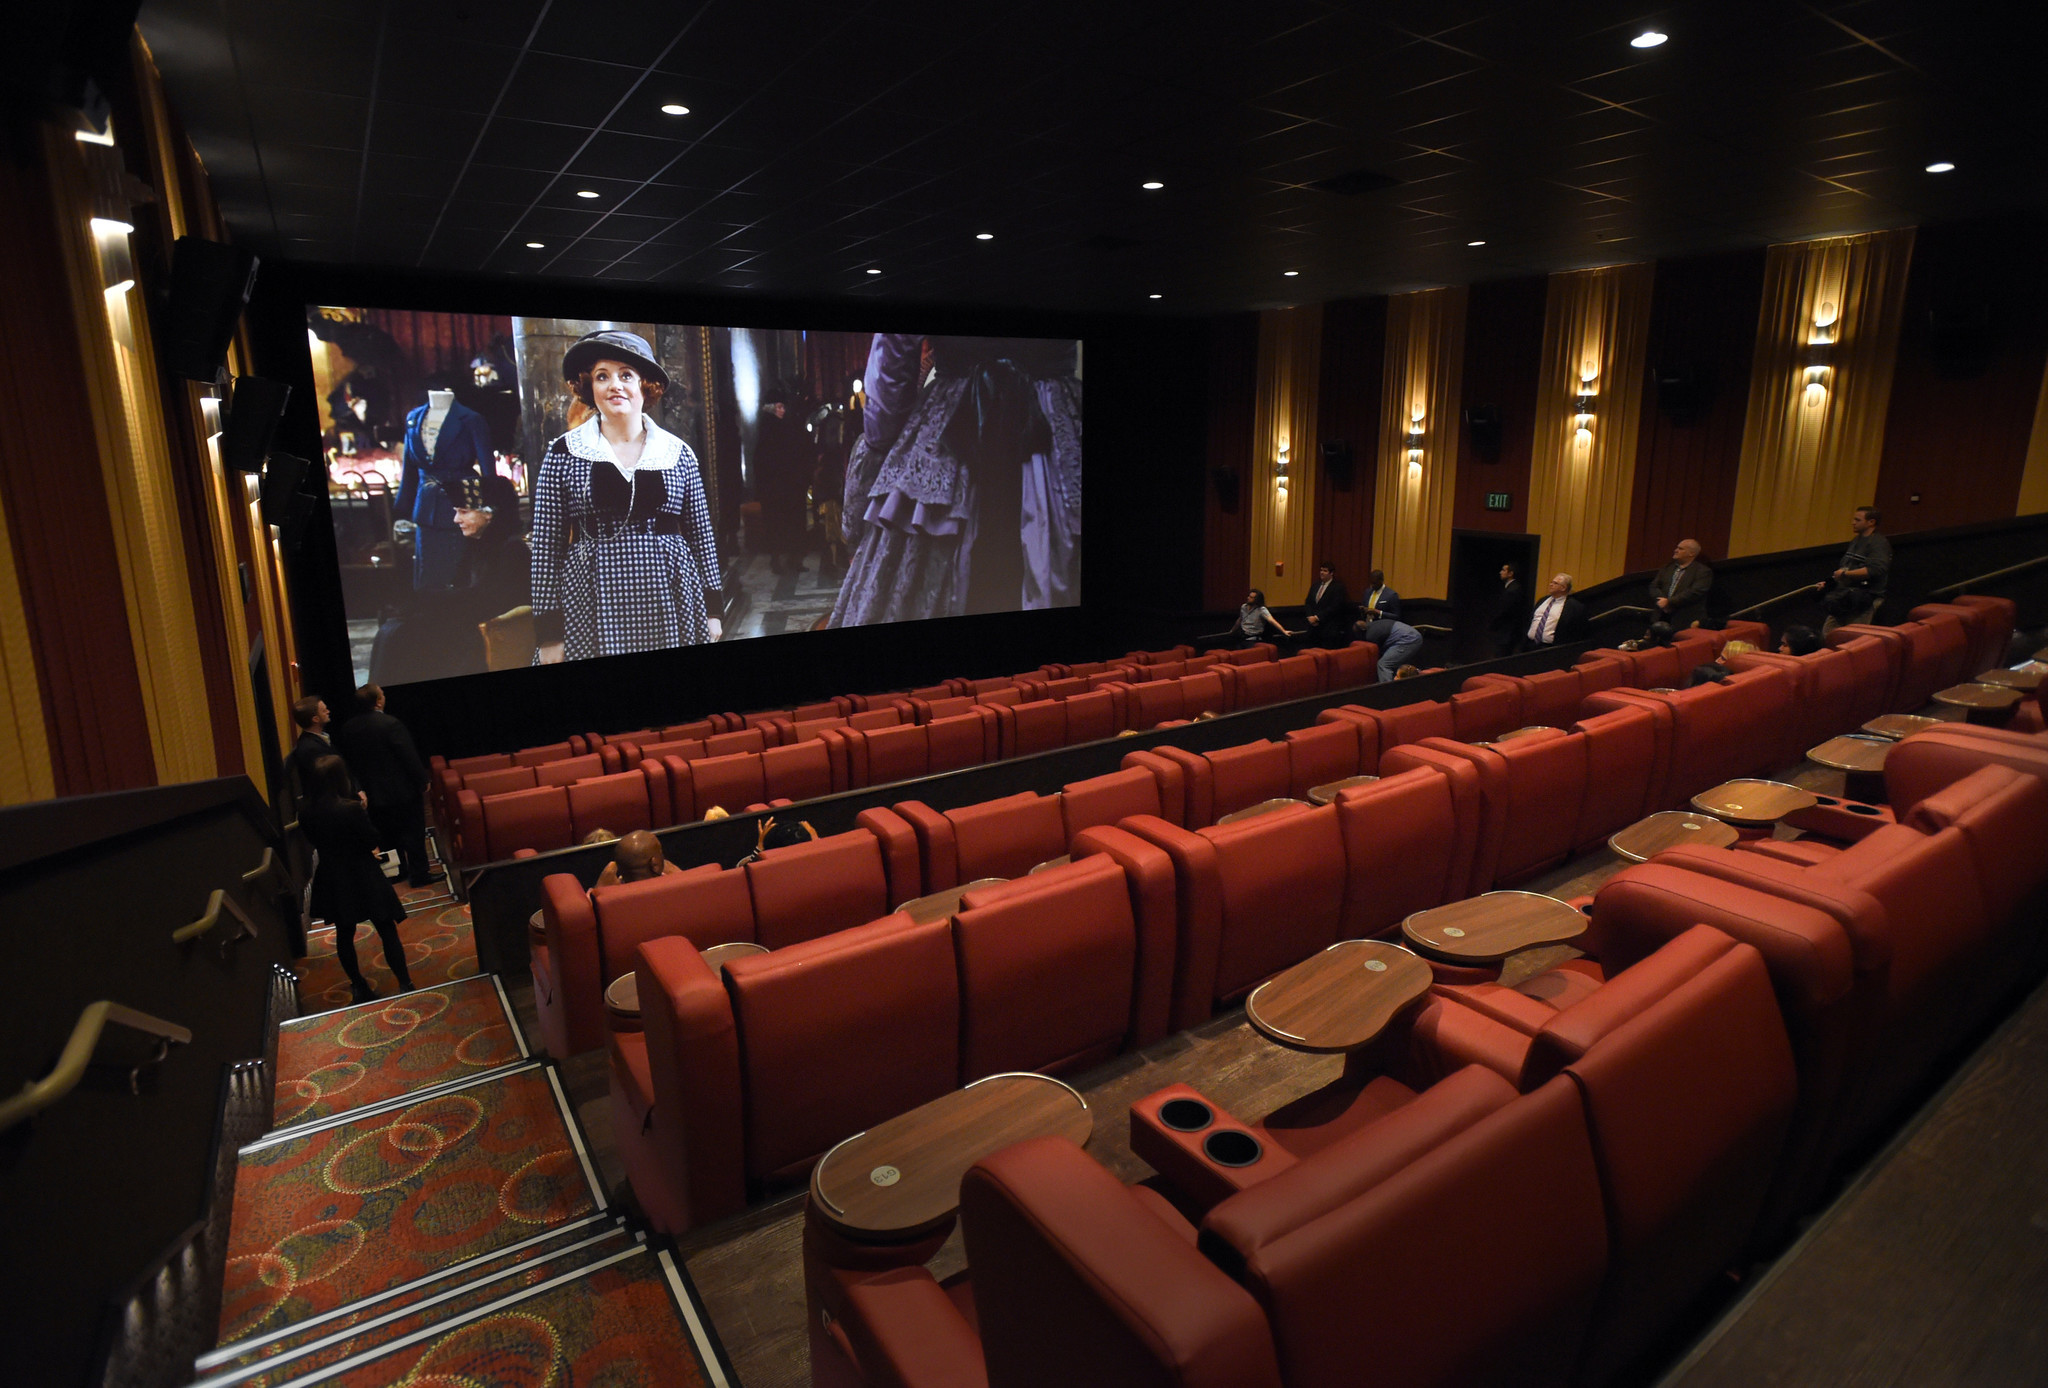 coming soon to movie theaters near you luxury seating upscale